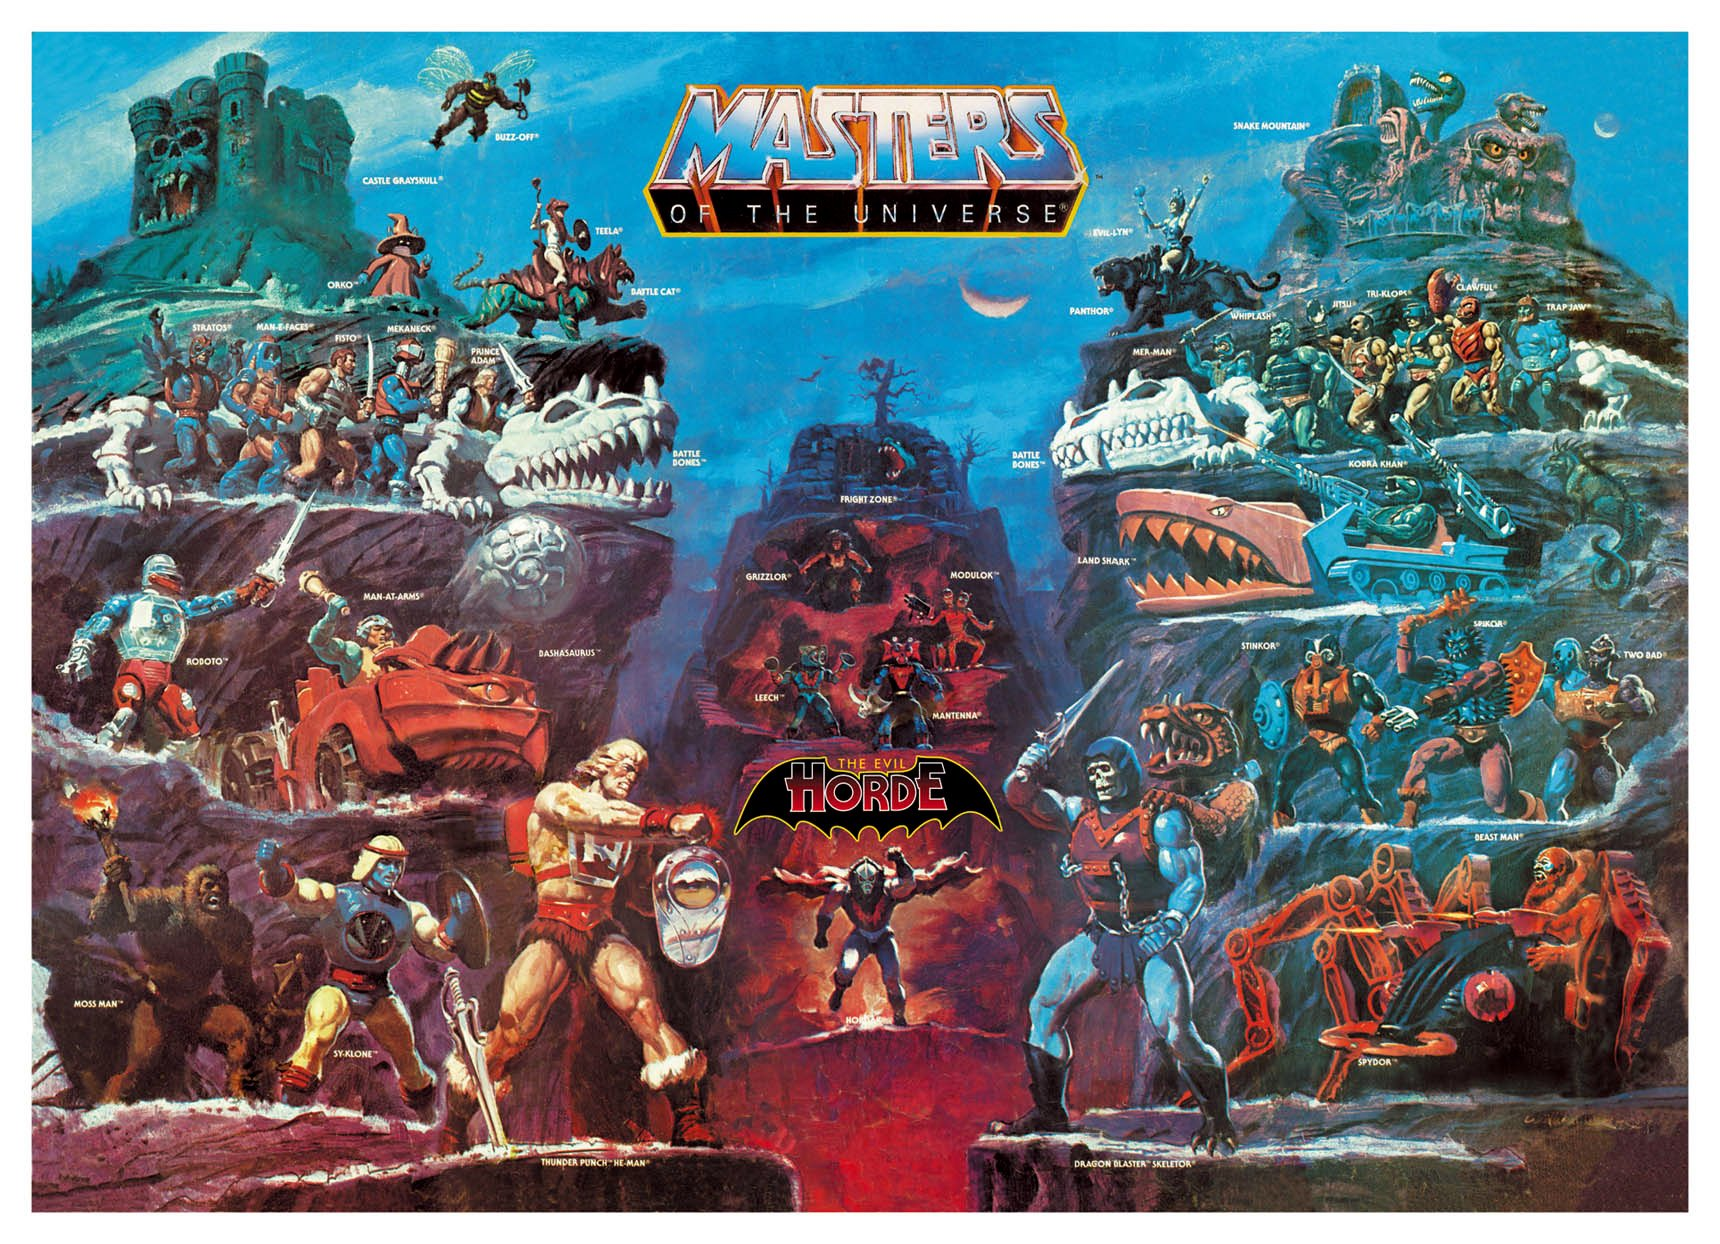 He Man And The Masters Of The Universe Wallpaper And Background